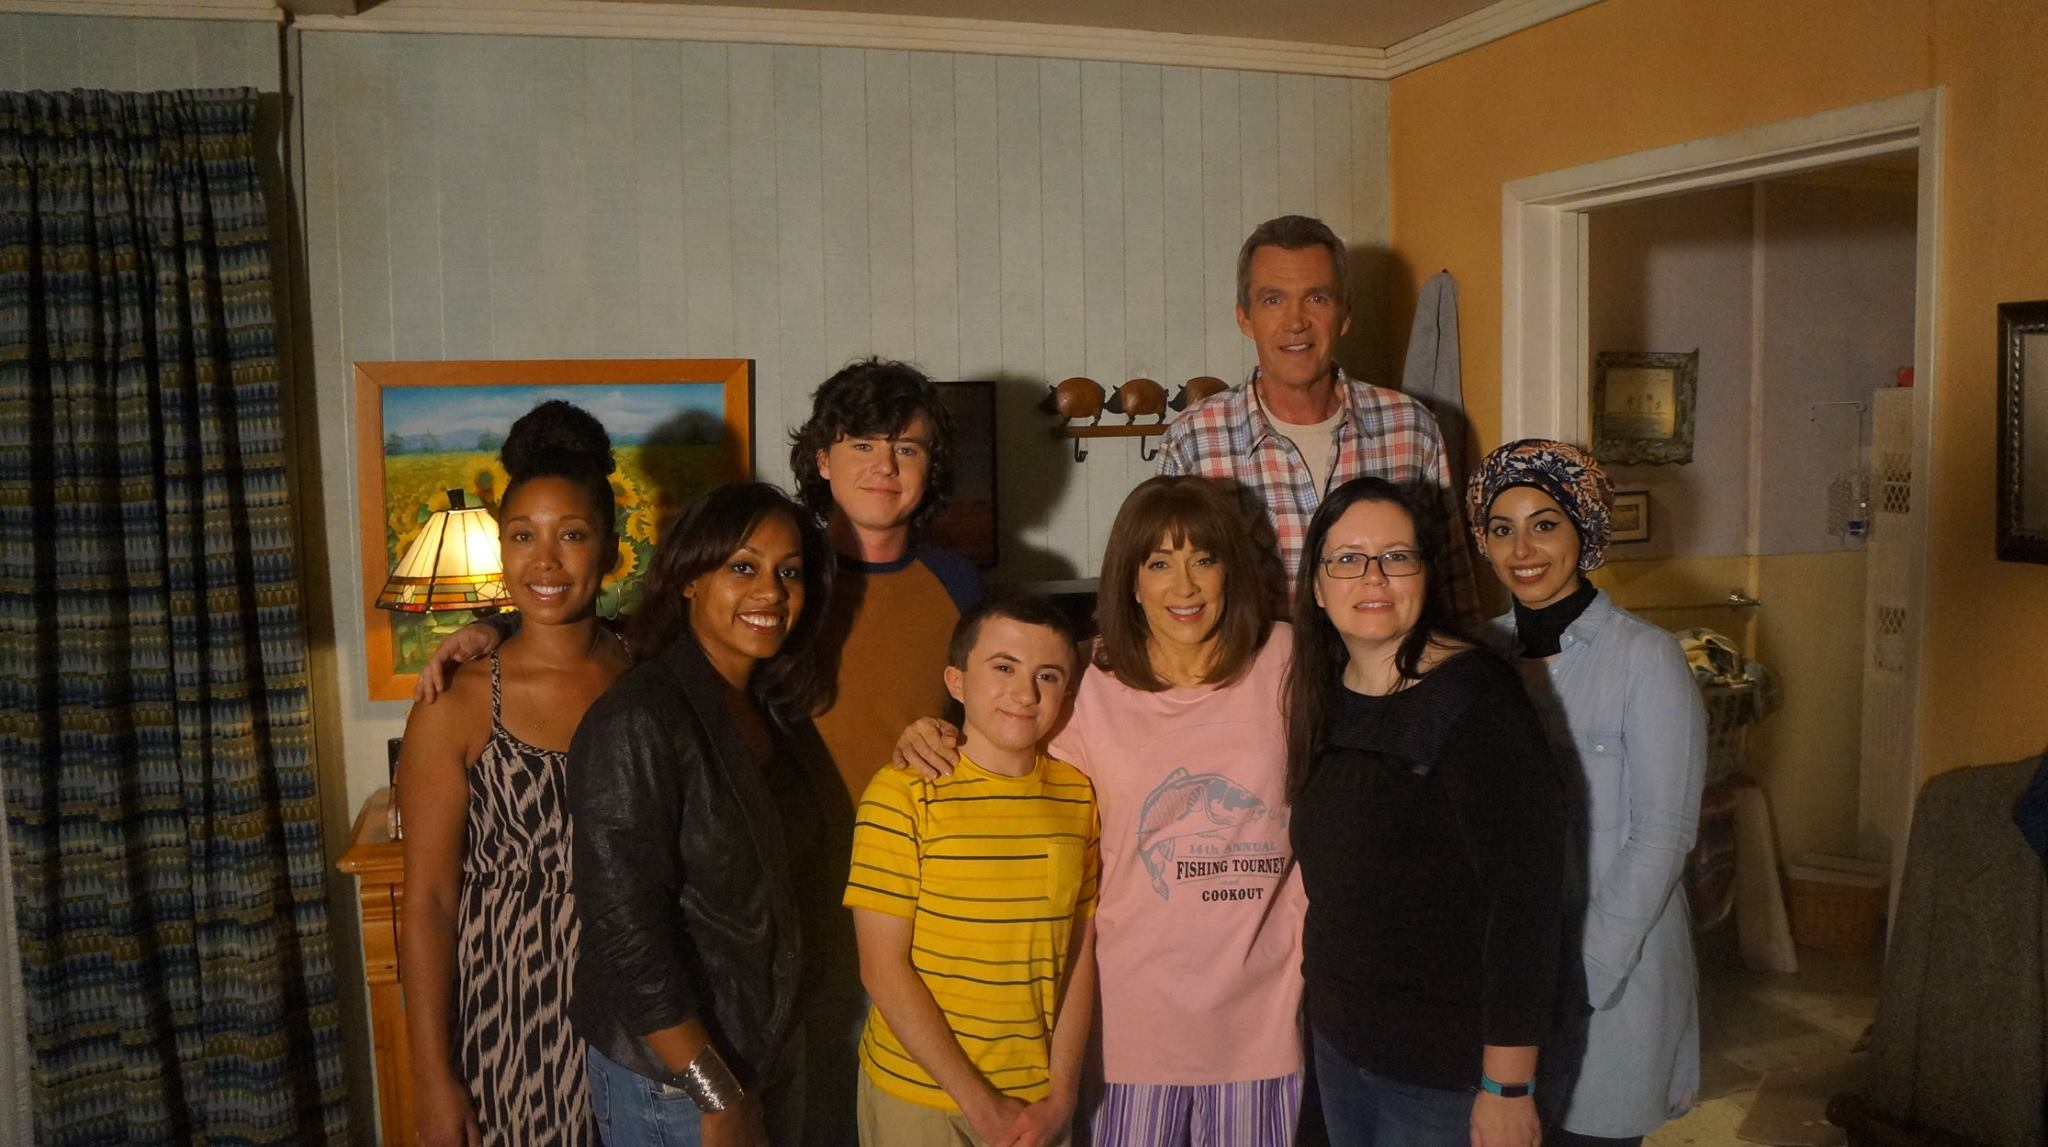 "Disney and ABC Bloggers with the Cast of The Middle ""The Hecks"" - Patricia Heaton, Neil Flynn, Charlie McDermott, Eden Sher, Atticus Shaffer)."